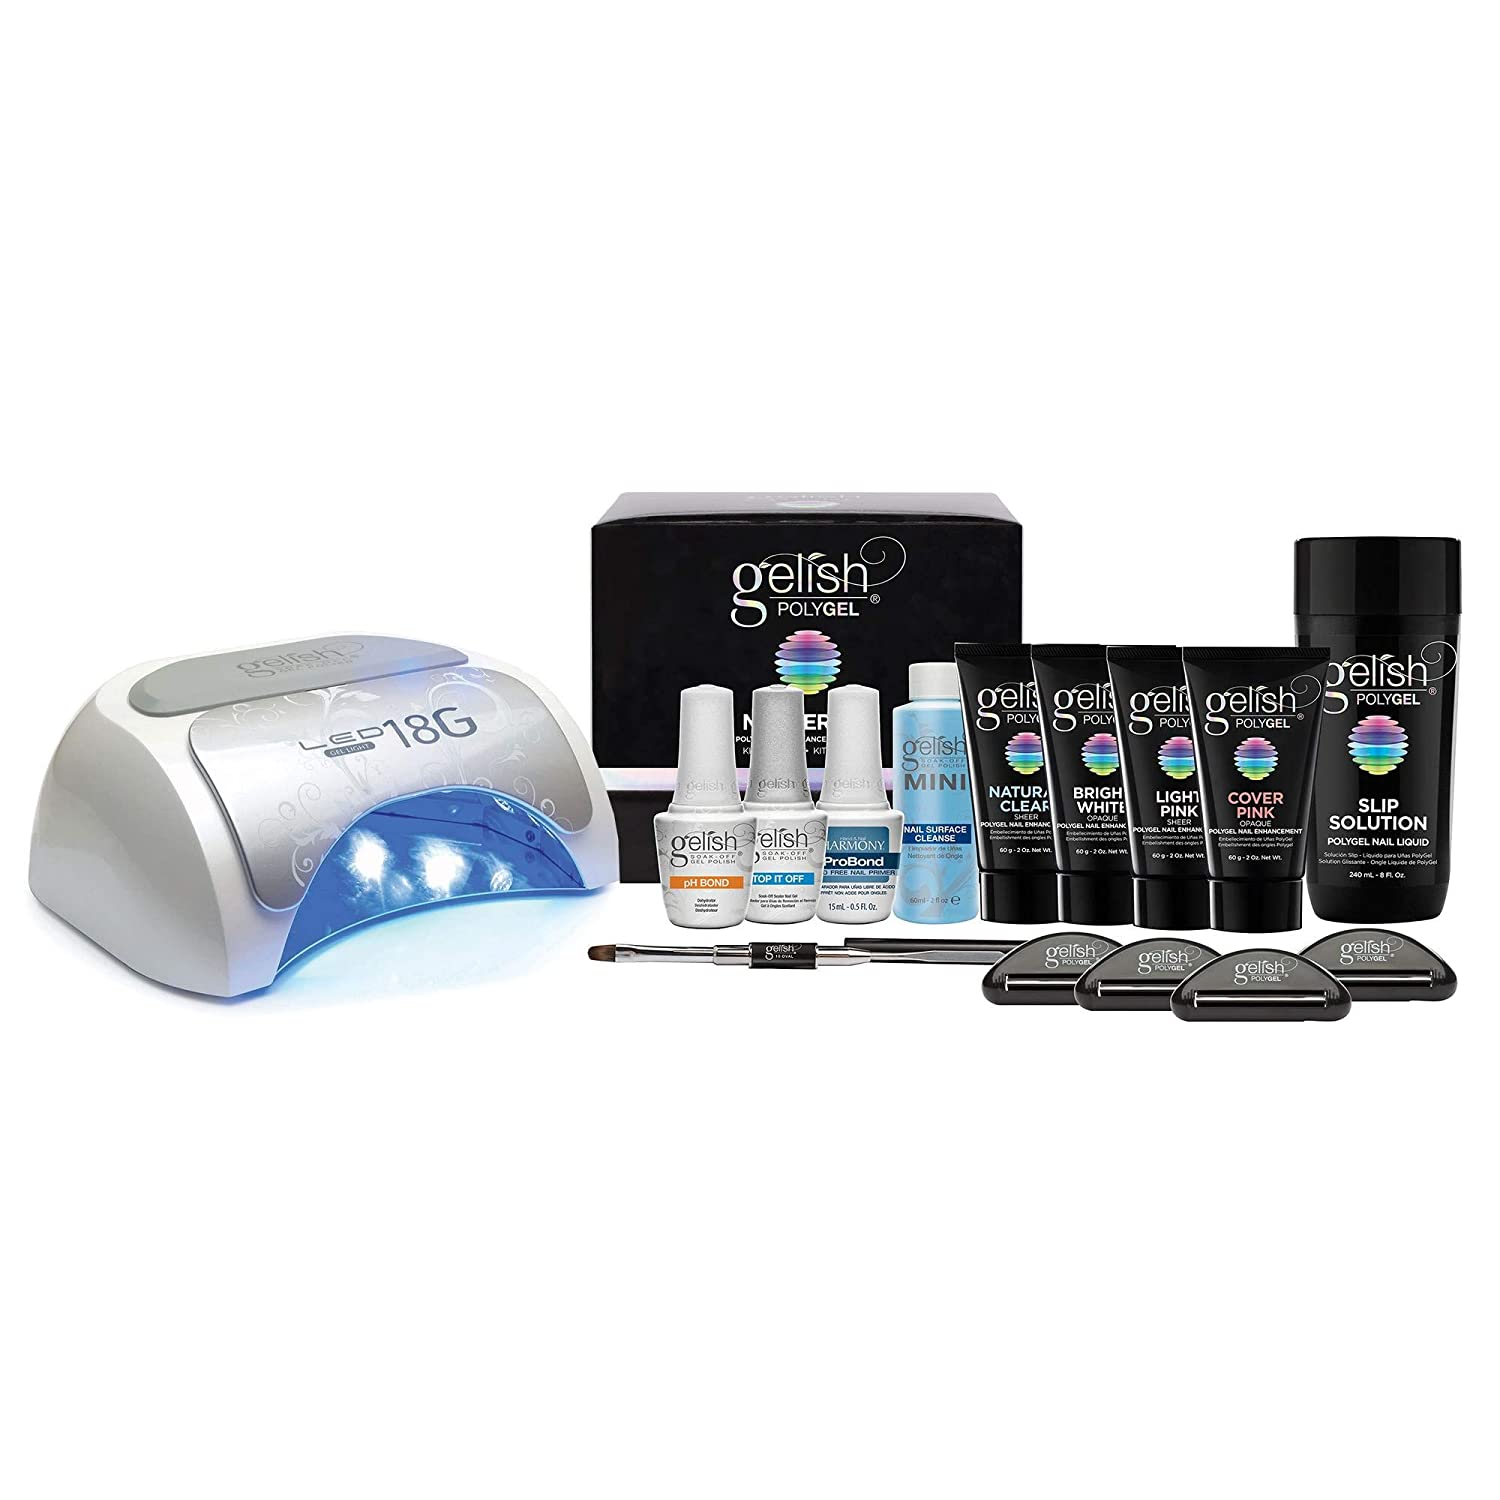 Gelish 12G LED Gel Polish Curing Lamp Light + PolyGel Professional Nail  Technician All in One Enhancement Master Kit